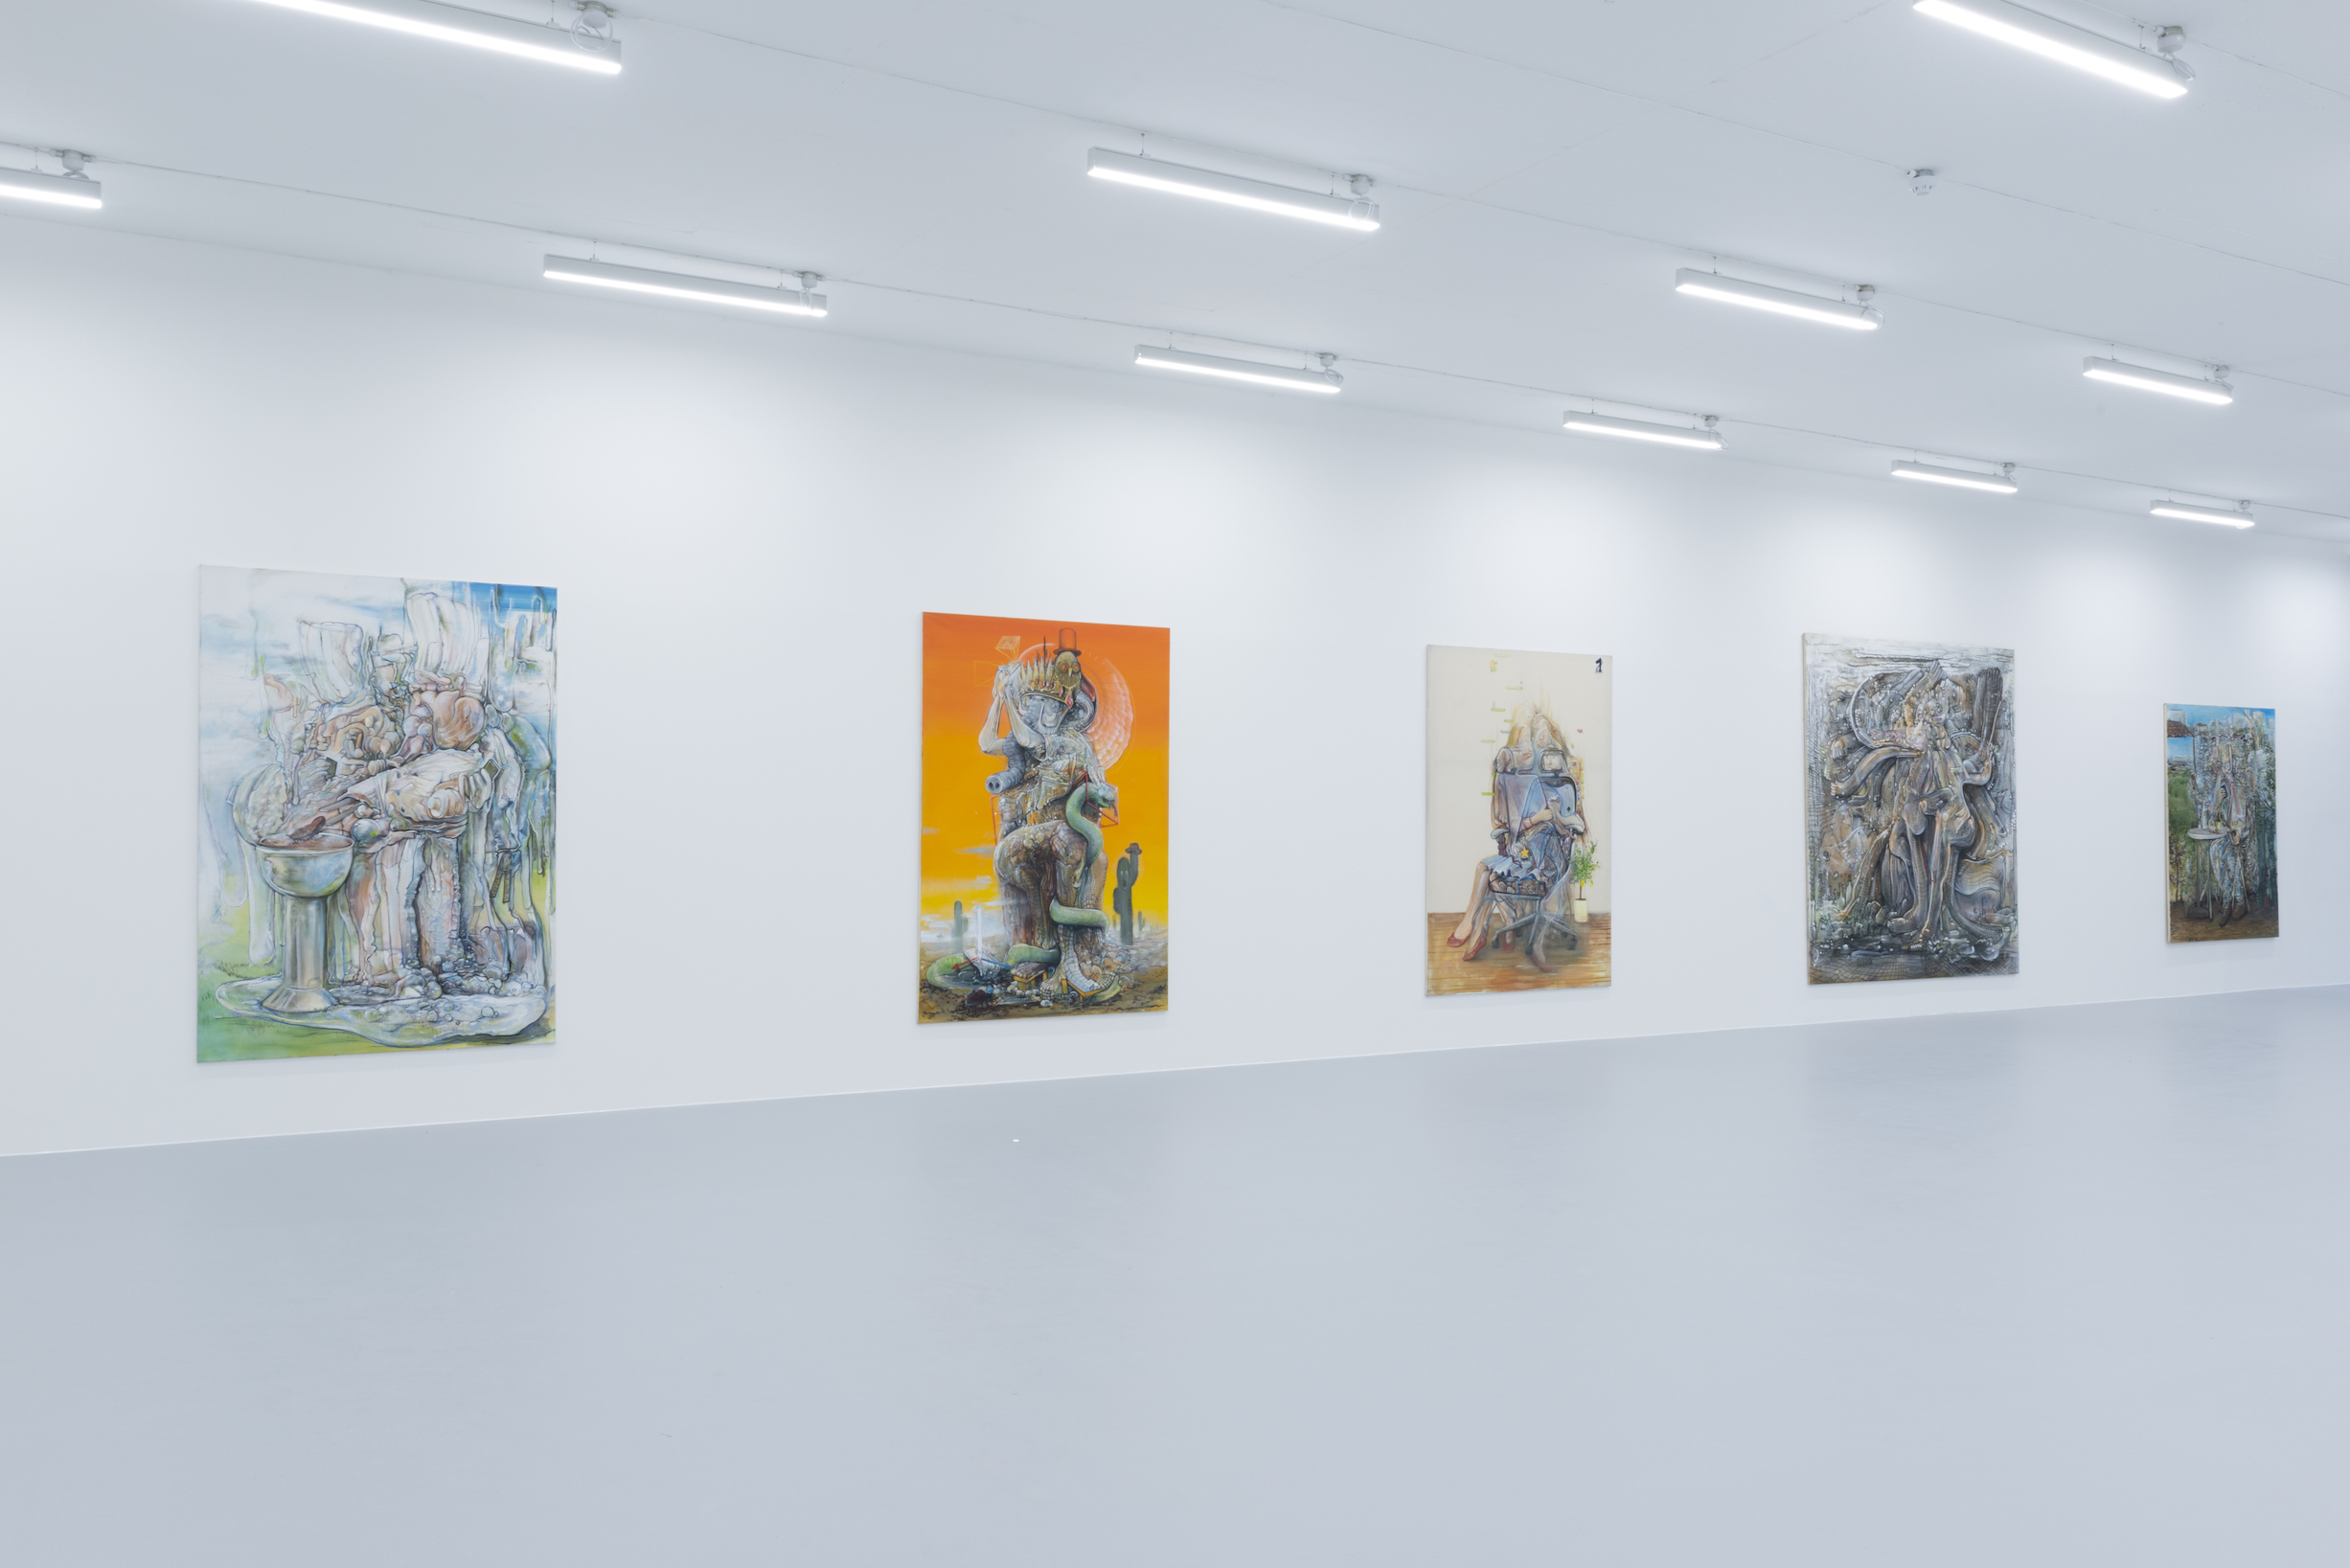 Installation view 1, Pascal Sender at Saatchi Yates, 2020, Courtesy of the artist and Saatchi Yates